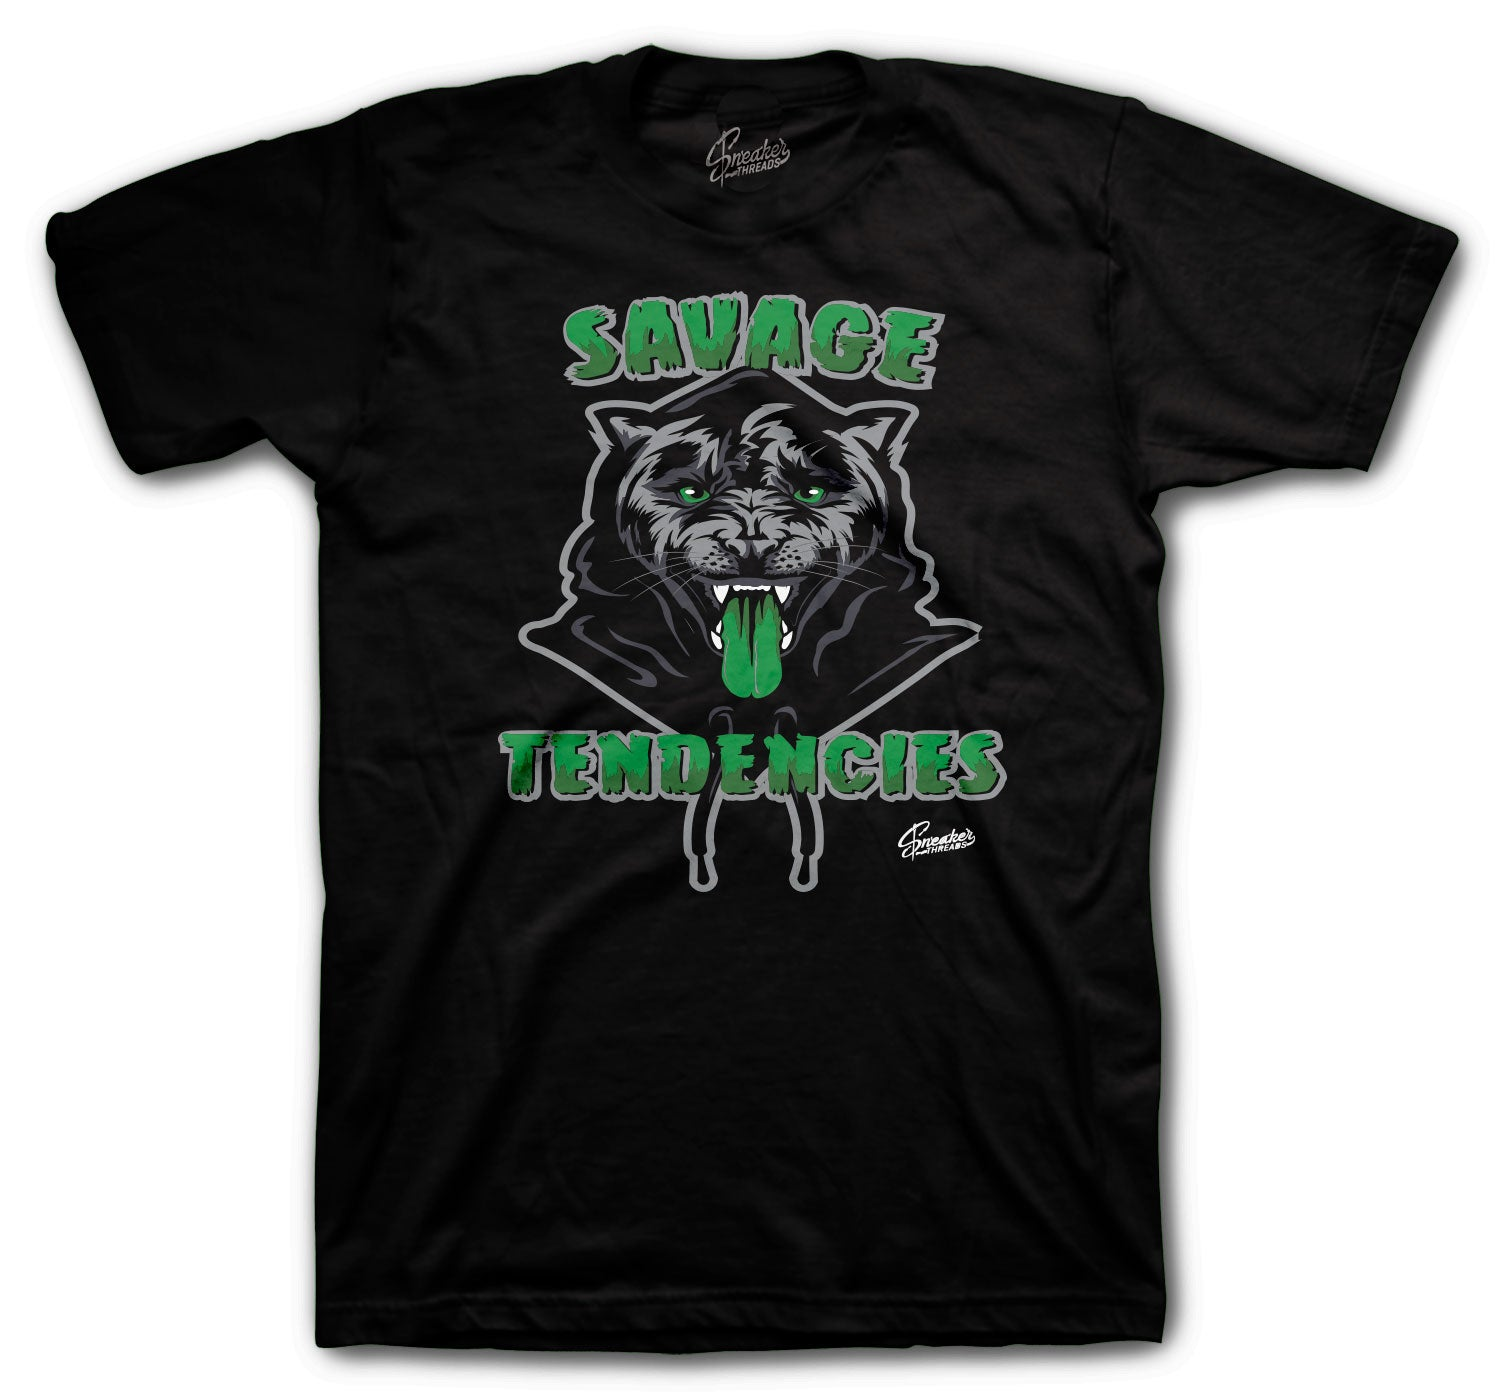 Jordan 13 Lucky Green Shirt - Savage Tendencies - Black